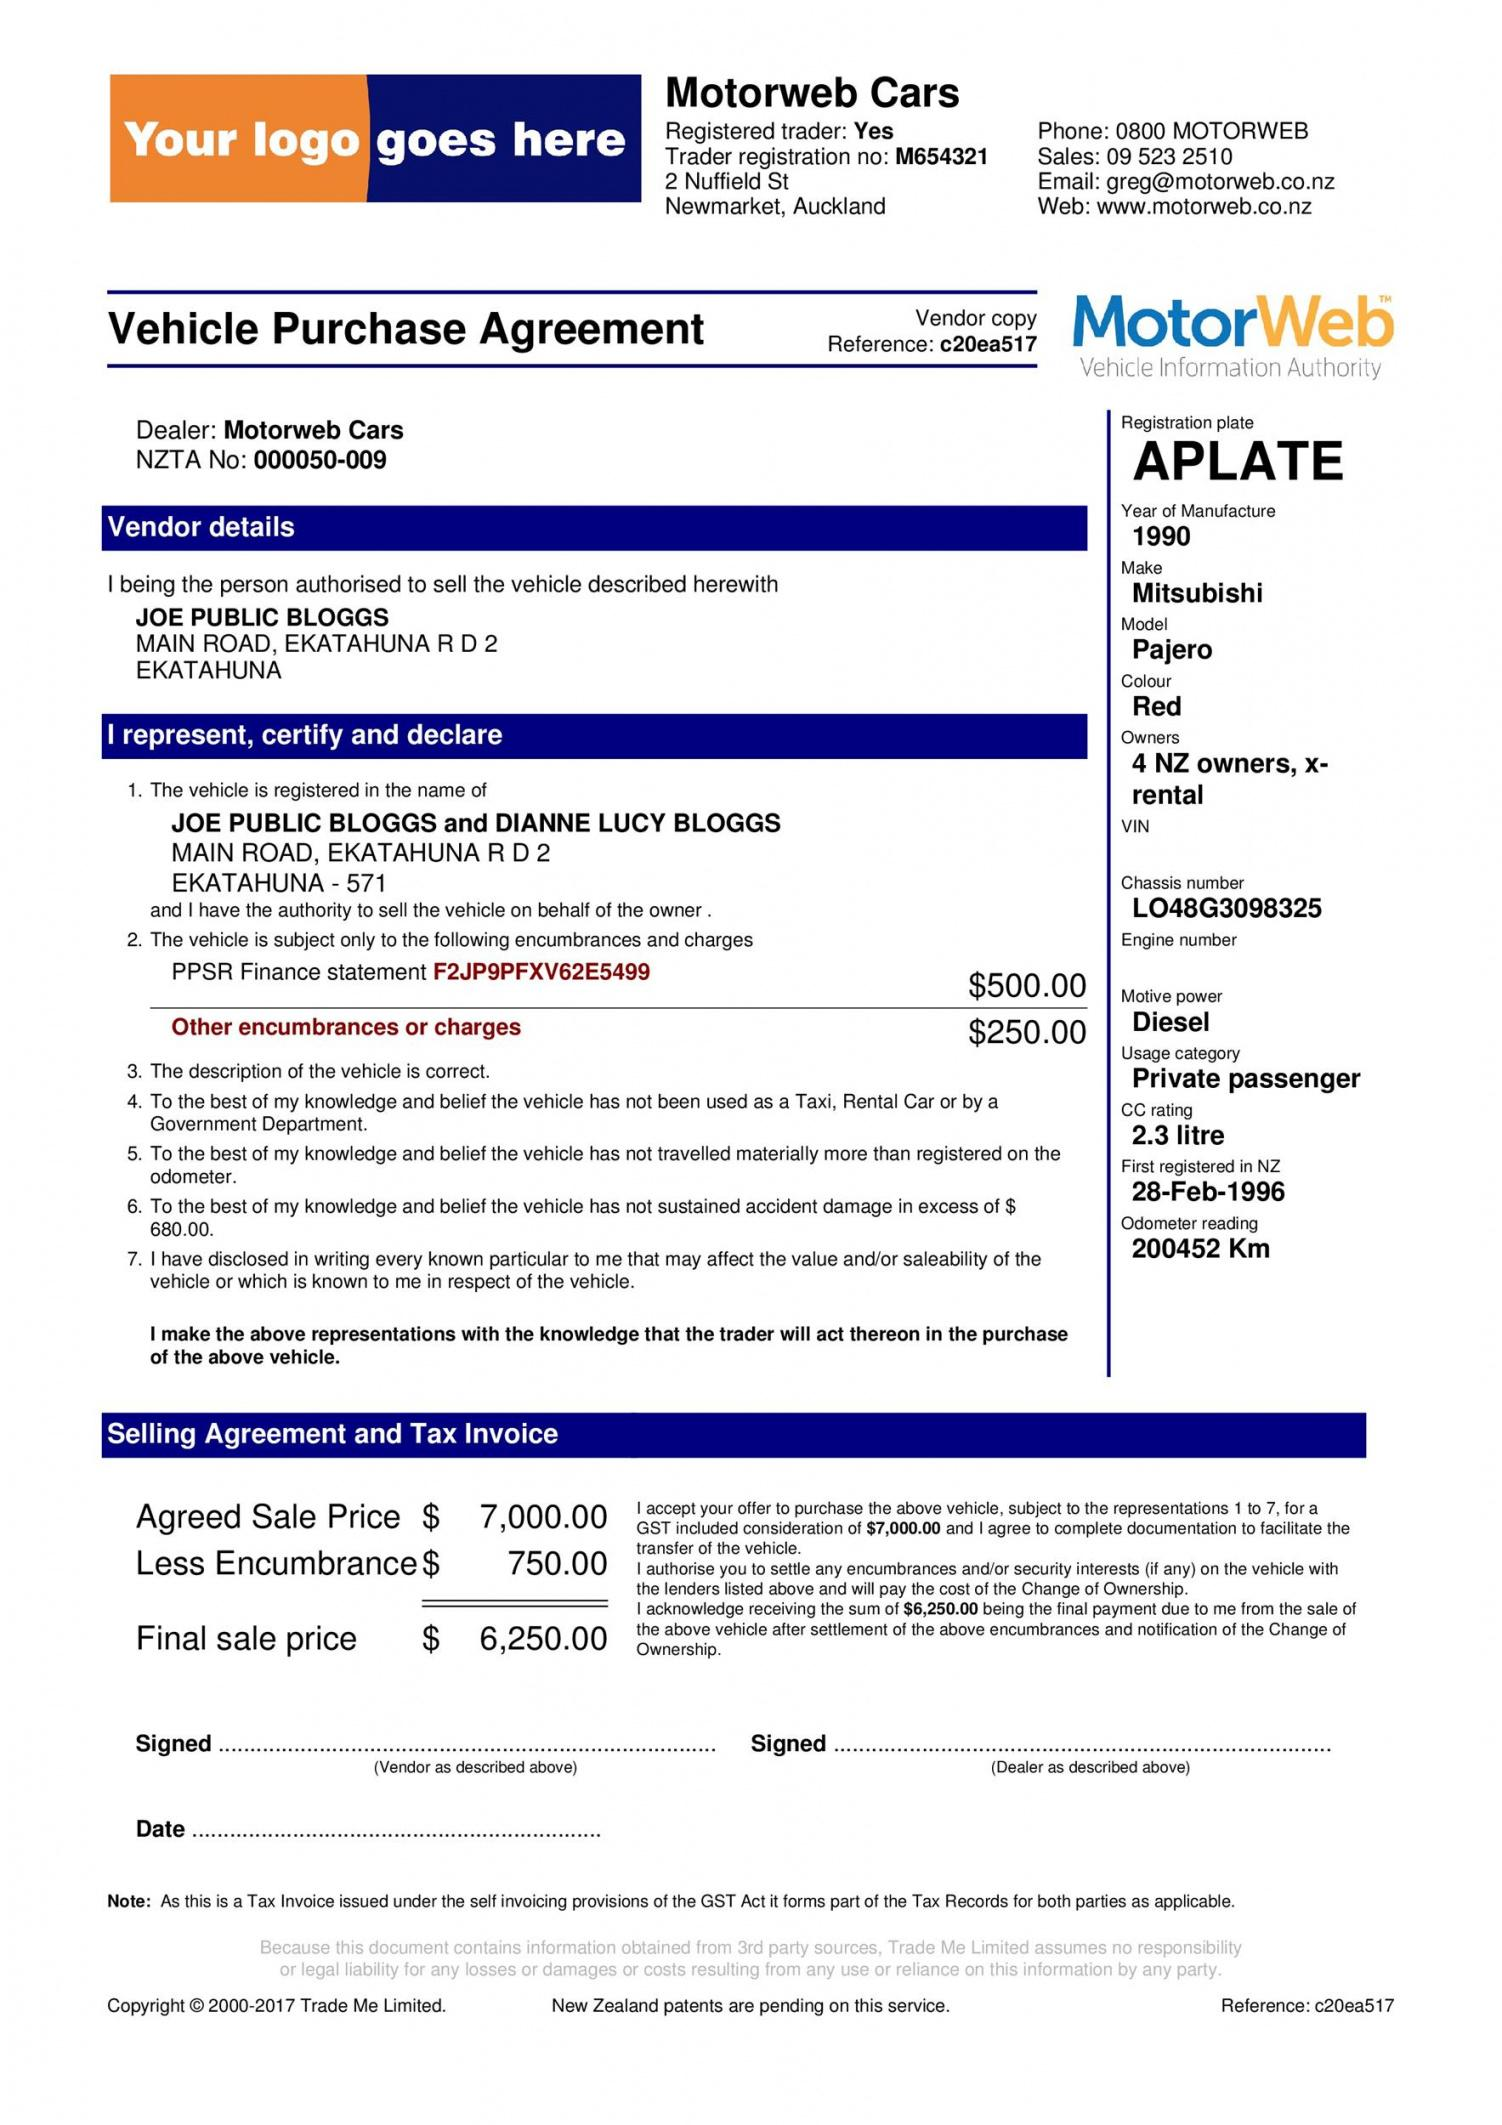 sample 42 printable vehicle purchase agreement templates  templatelab automotive service contract template pdf